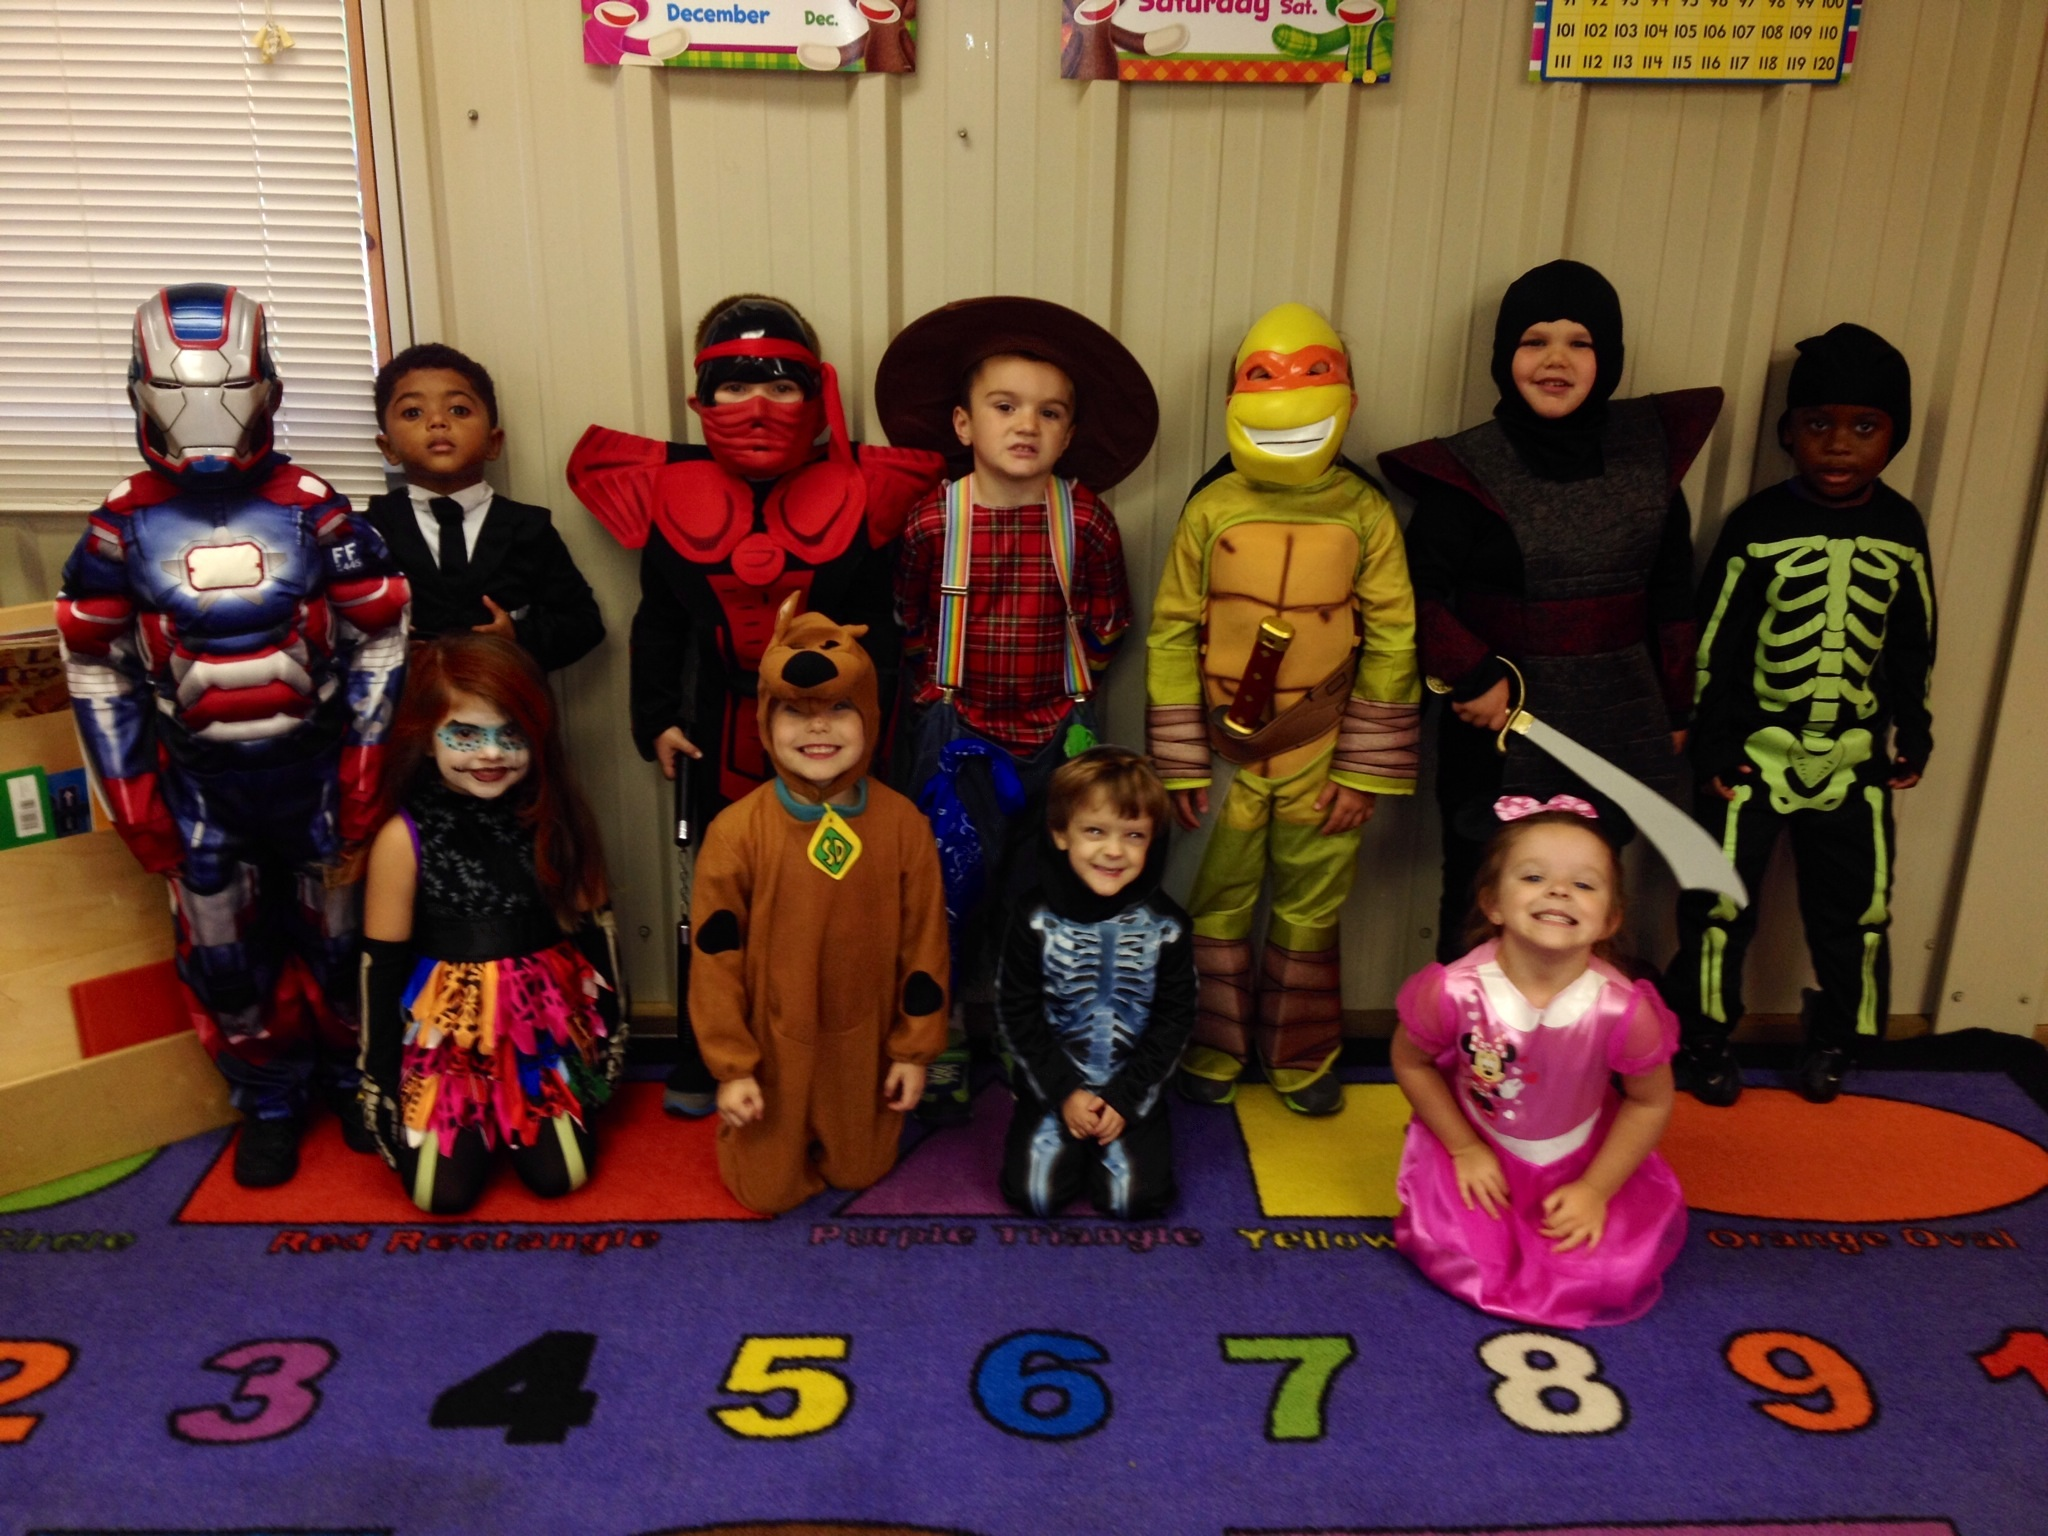 PHOTO SUBMITTED / Ms. Toni's 4 year-old class at Precious Moments Learning Center in Wesson was decked out in style Thursday.